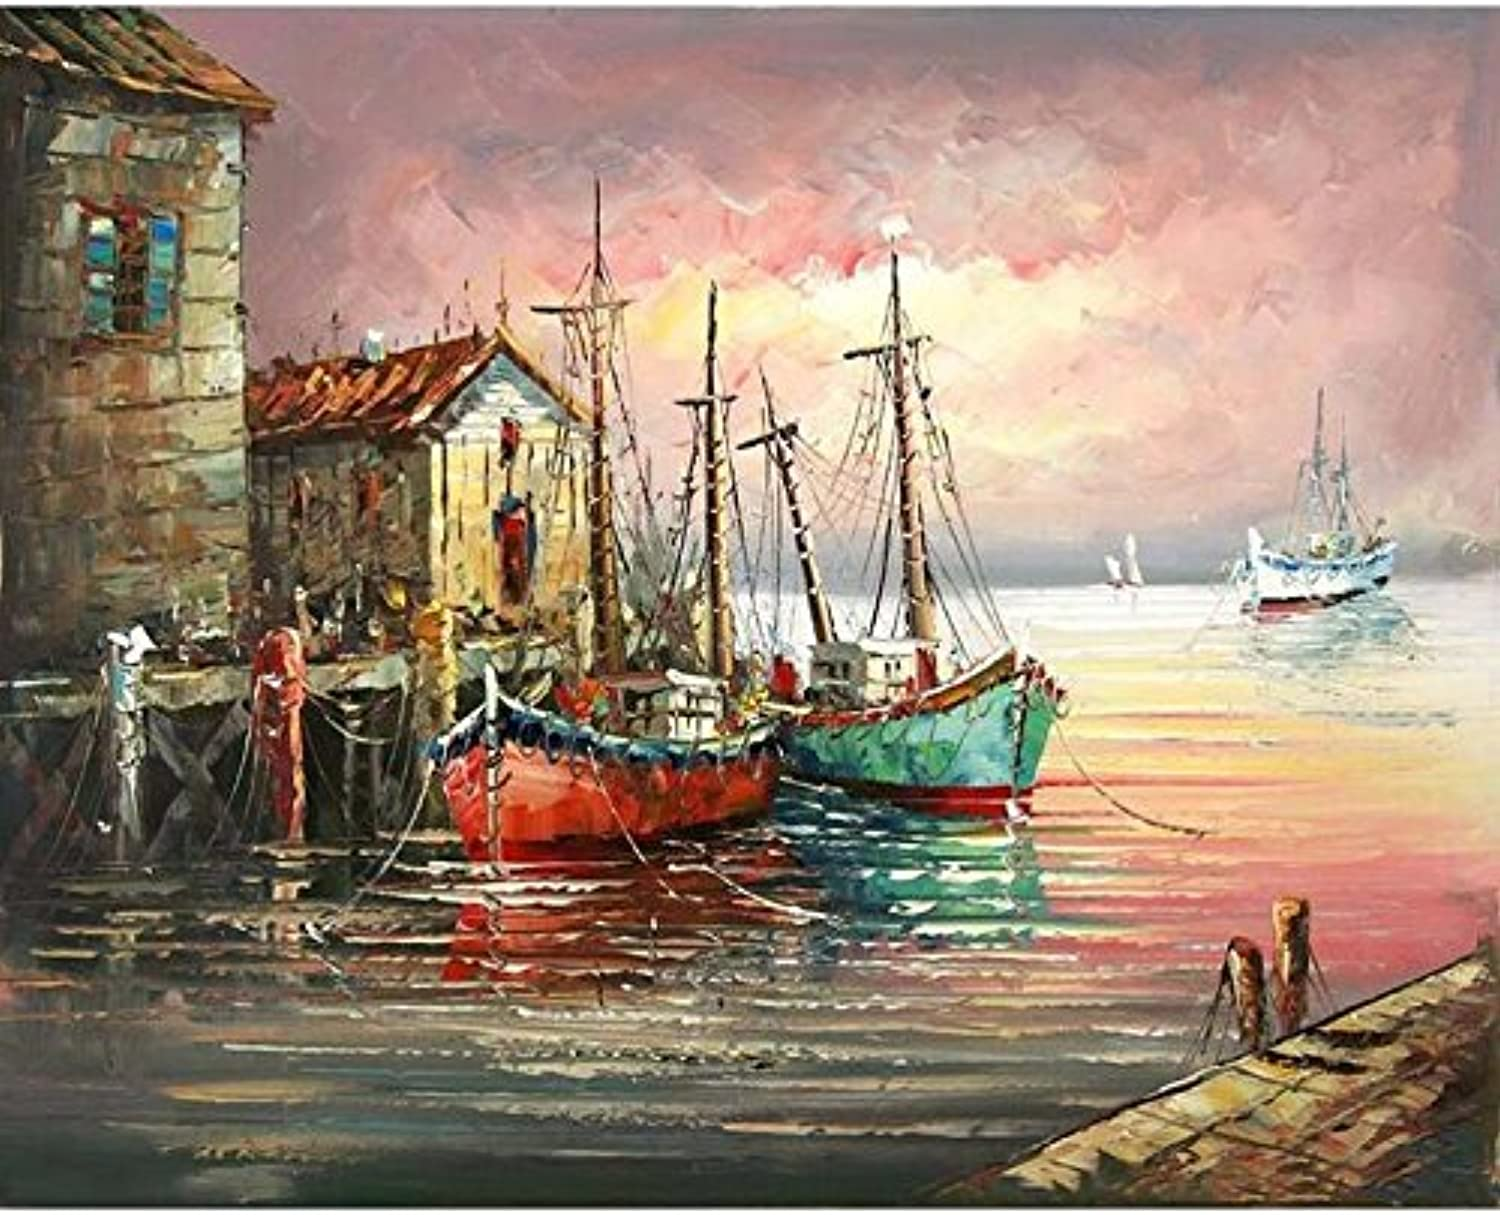 Paint by Number Kit,Diy Oil Painting Drawing Ships Pier Canvas with Brushes Decor Decorations Gifts - 16x20 inch with Frame